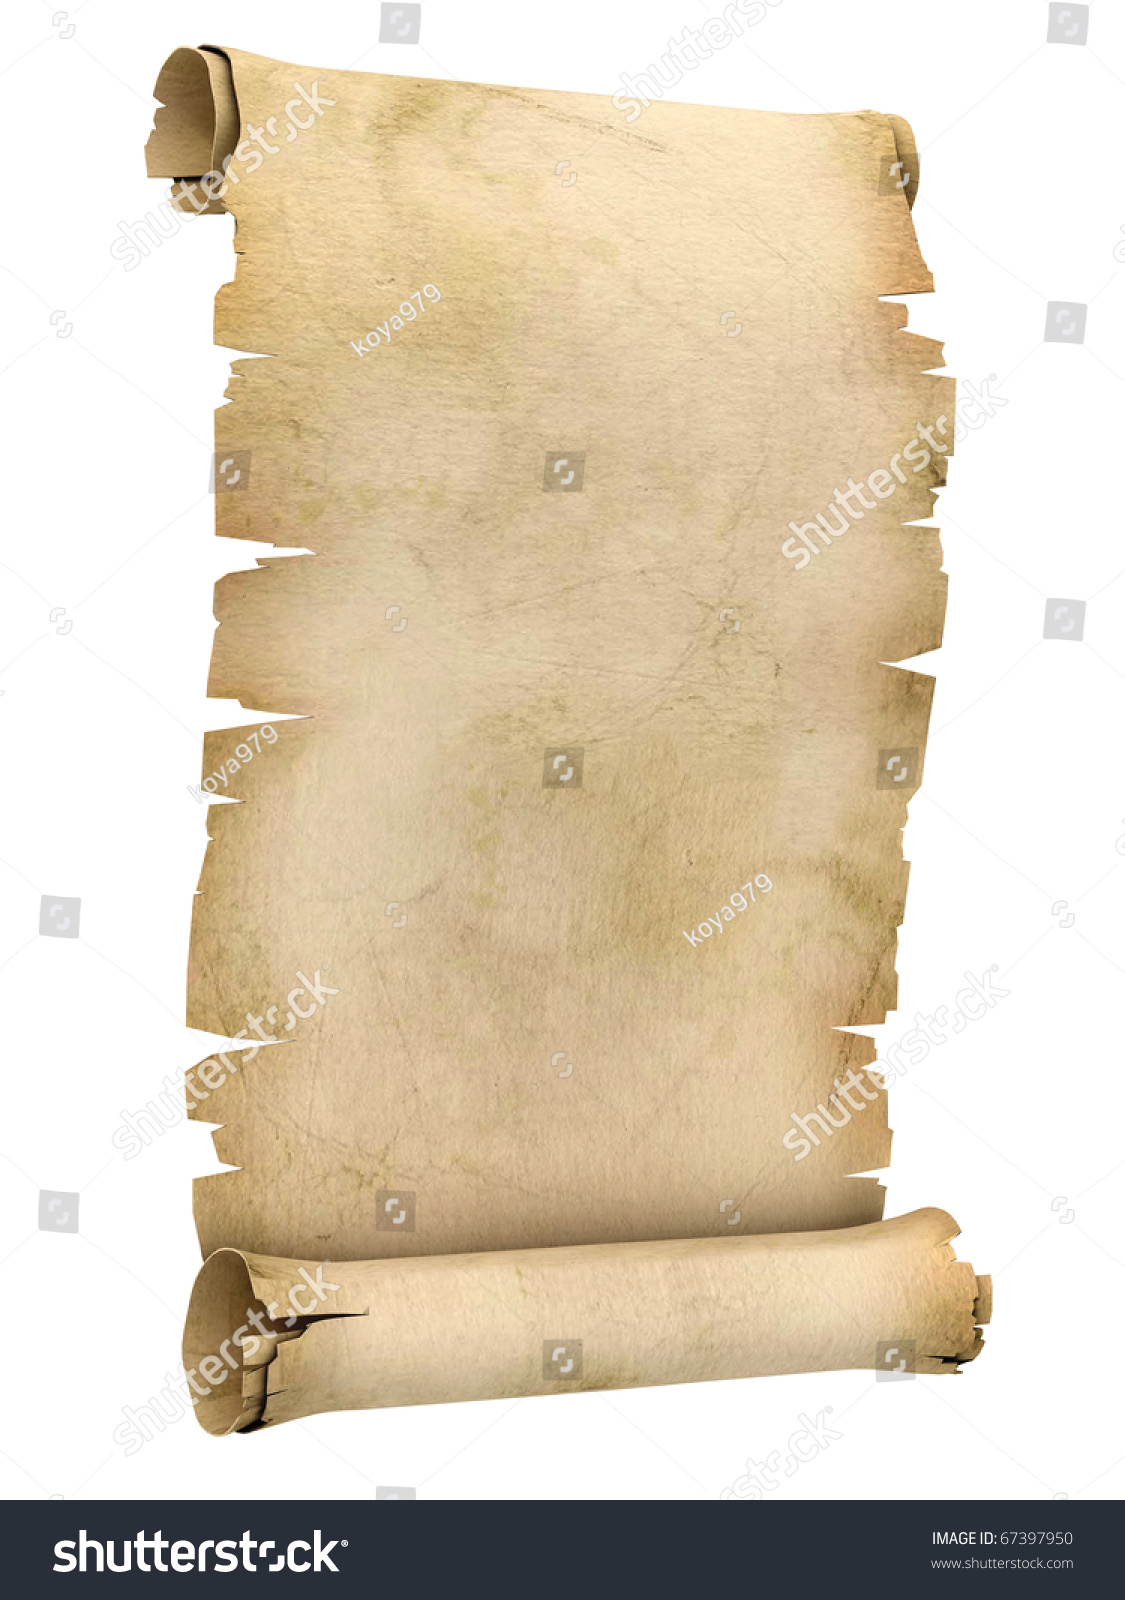 3d Scroll Of Parchment Photo: Parchment Scroll 3d Illustration Isolated On Stock